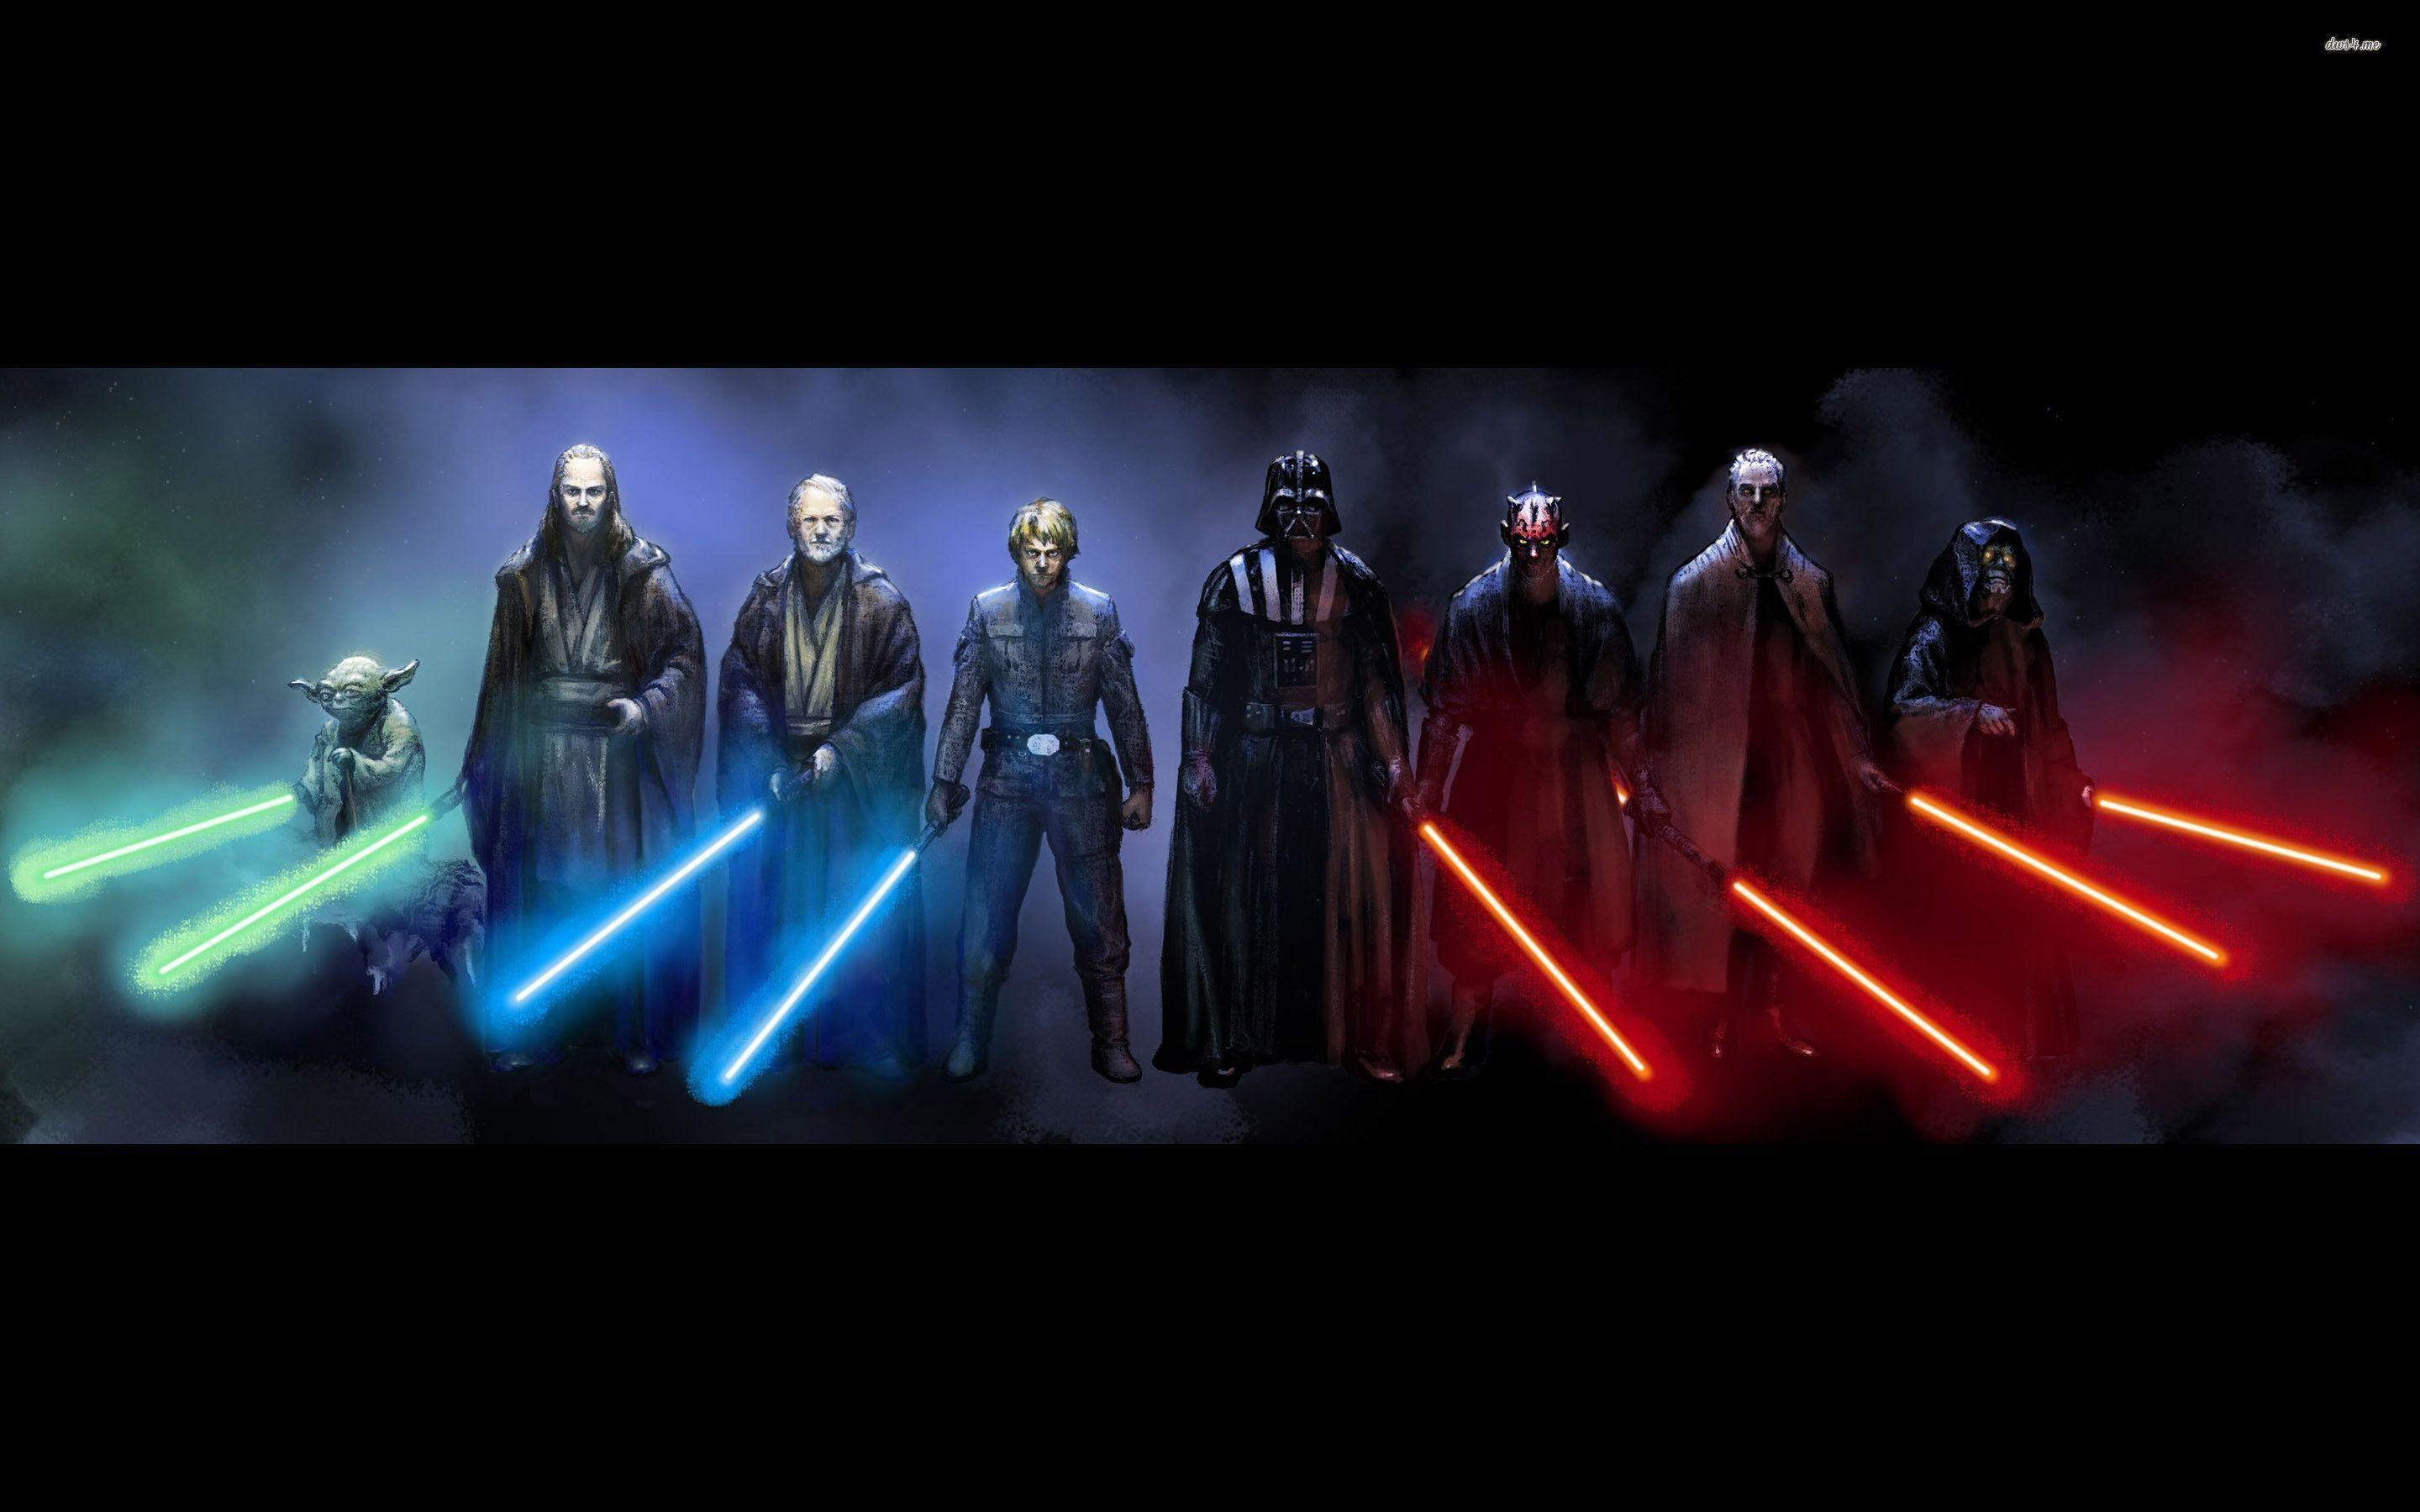 Star Wars Sith Wallpapers 2880x1800